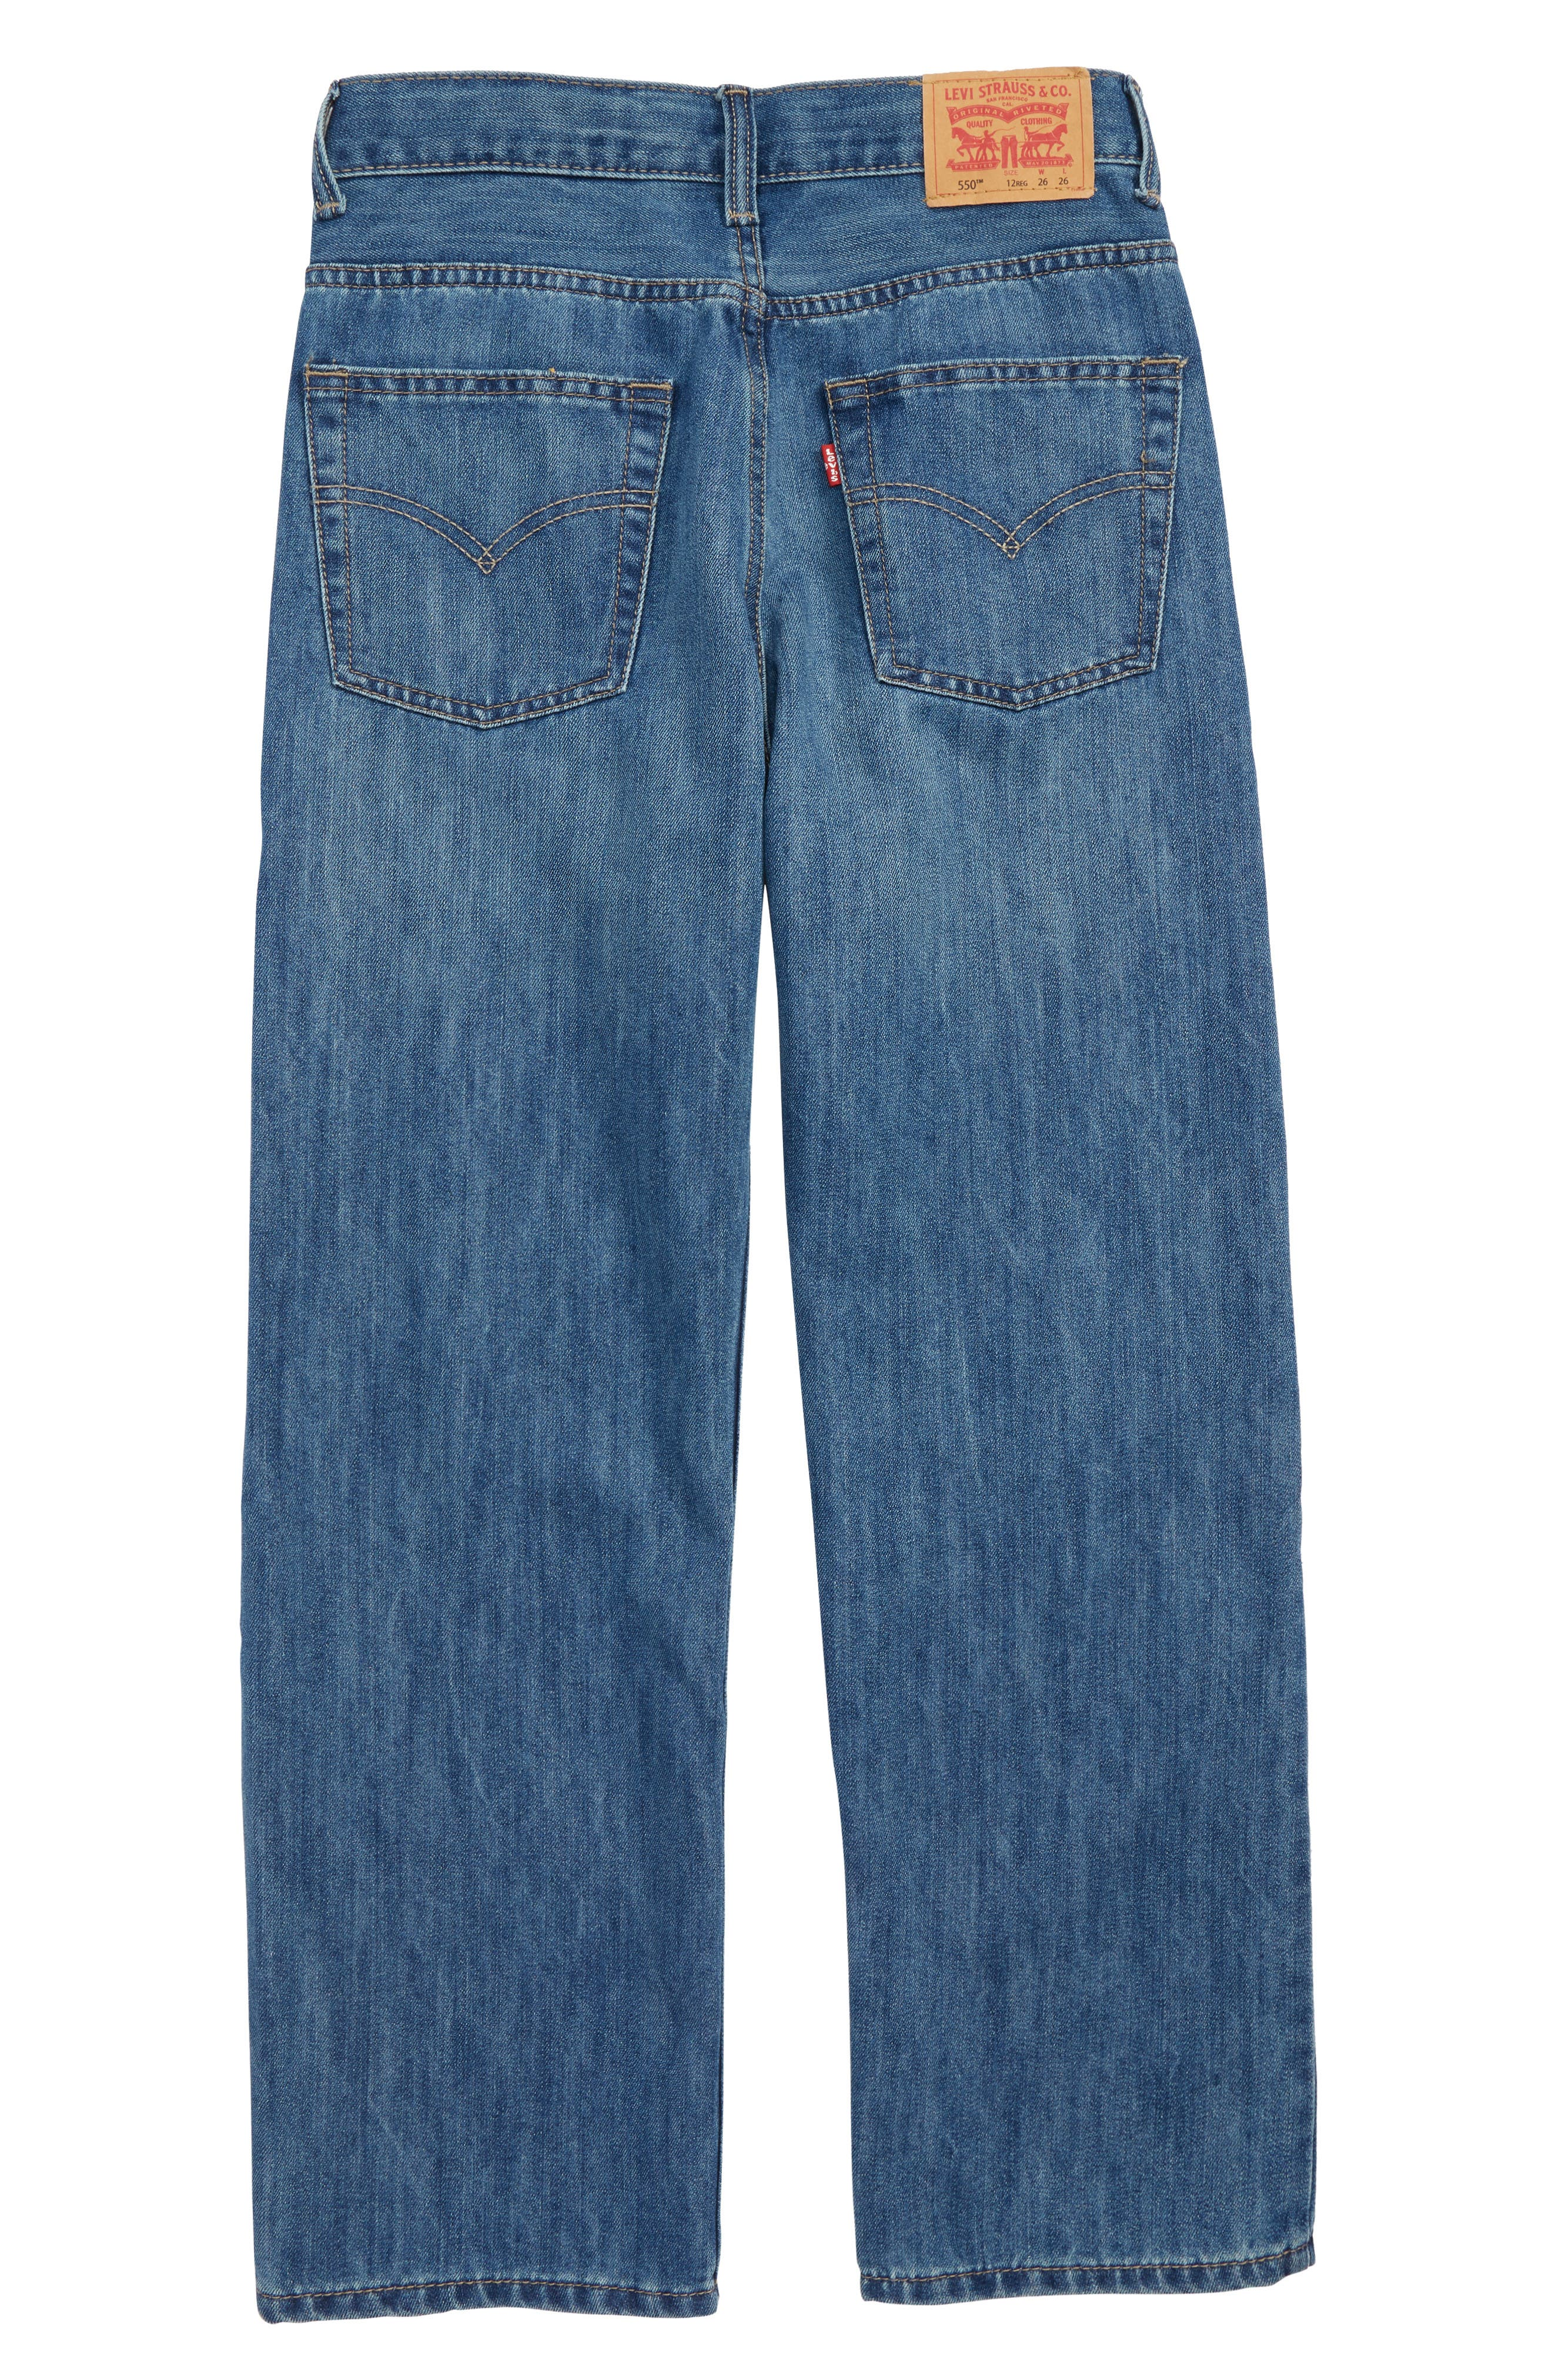 550<sup>™</sup> Relaxed Fit Jeans,                             Alternate thumbnail 2, color,                             426